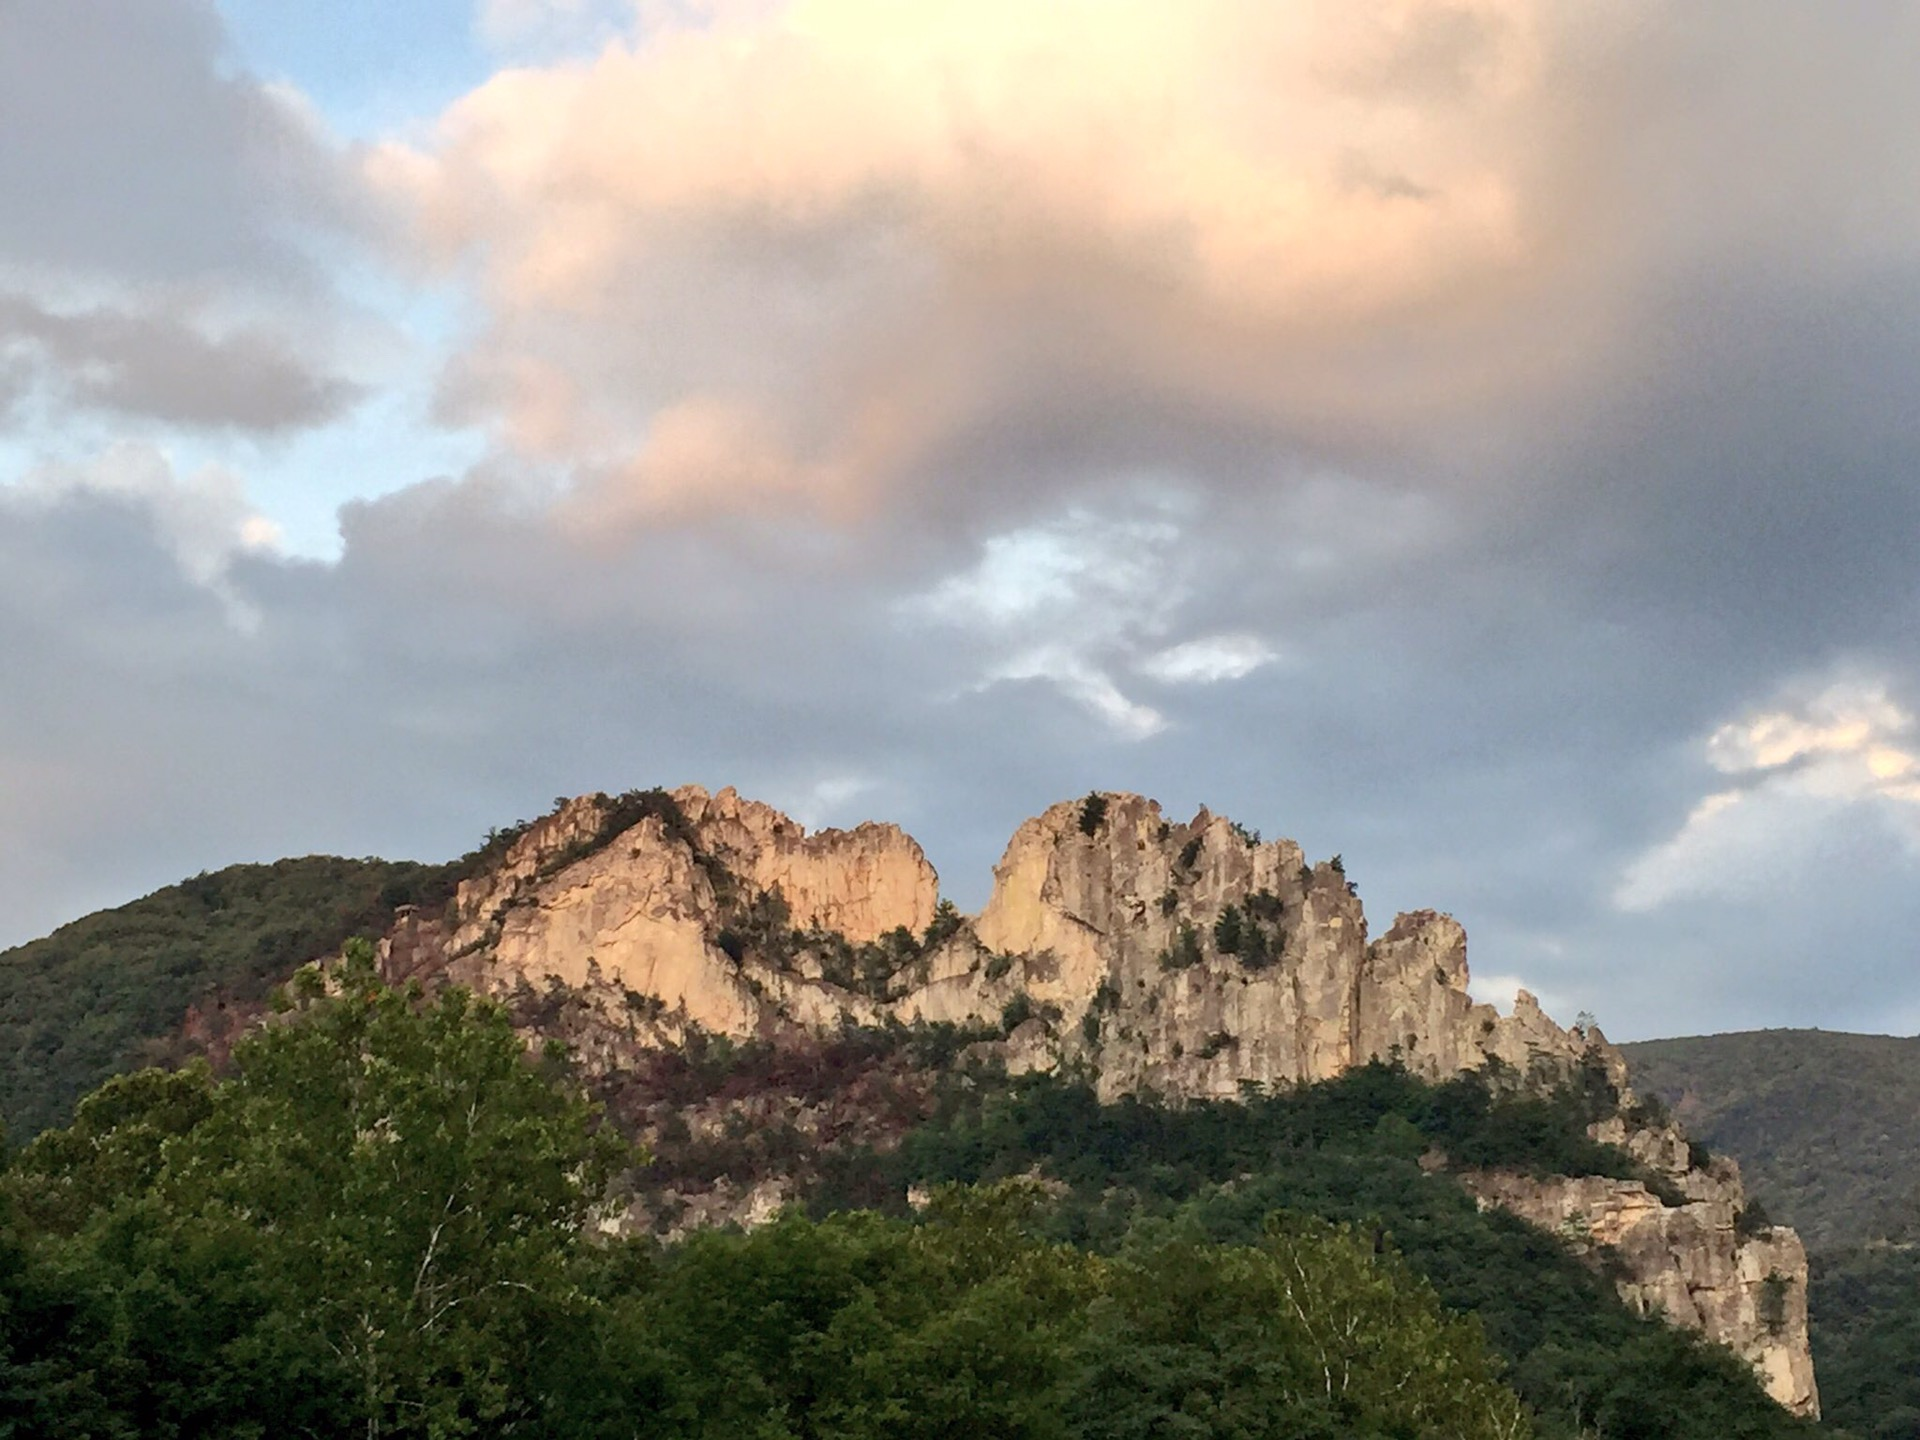 seneca rocks chatrooms Seneca rocks west virginia accommodations only hotels in seneca rocks are listed belowfind cheap and discounted hotel/motel rates in or nearby seneca rocks, wv for your upcoming personal or group travel.